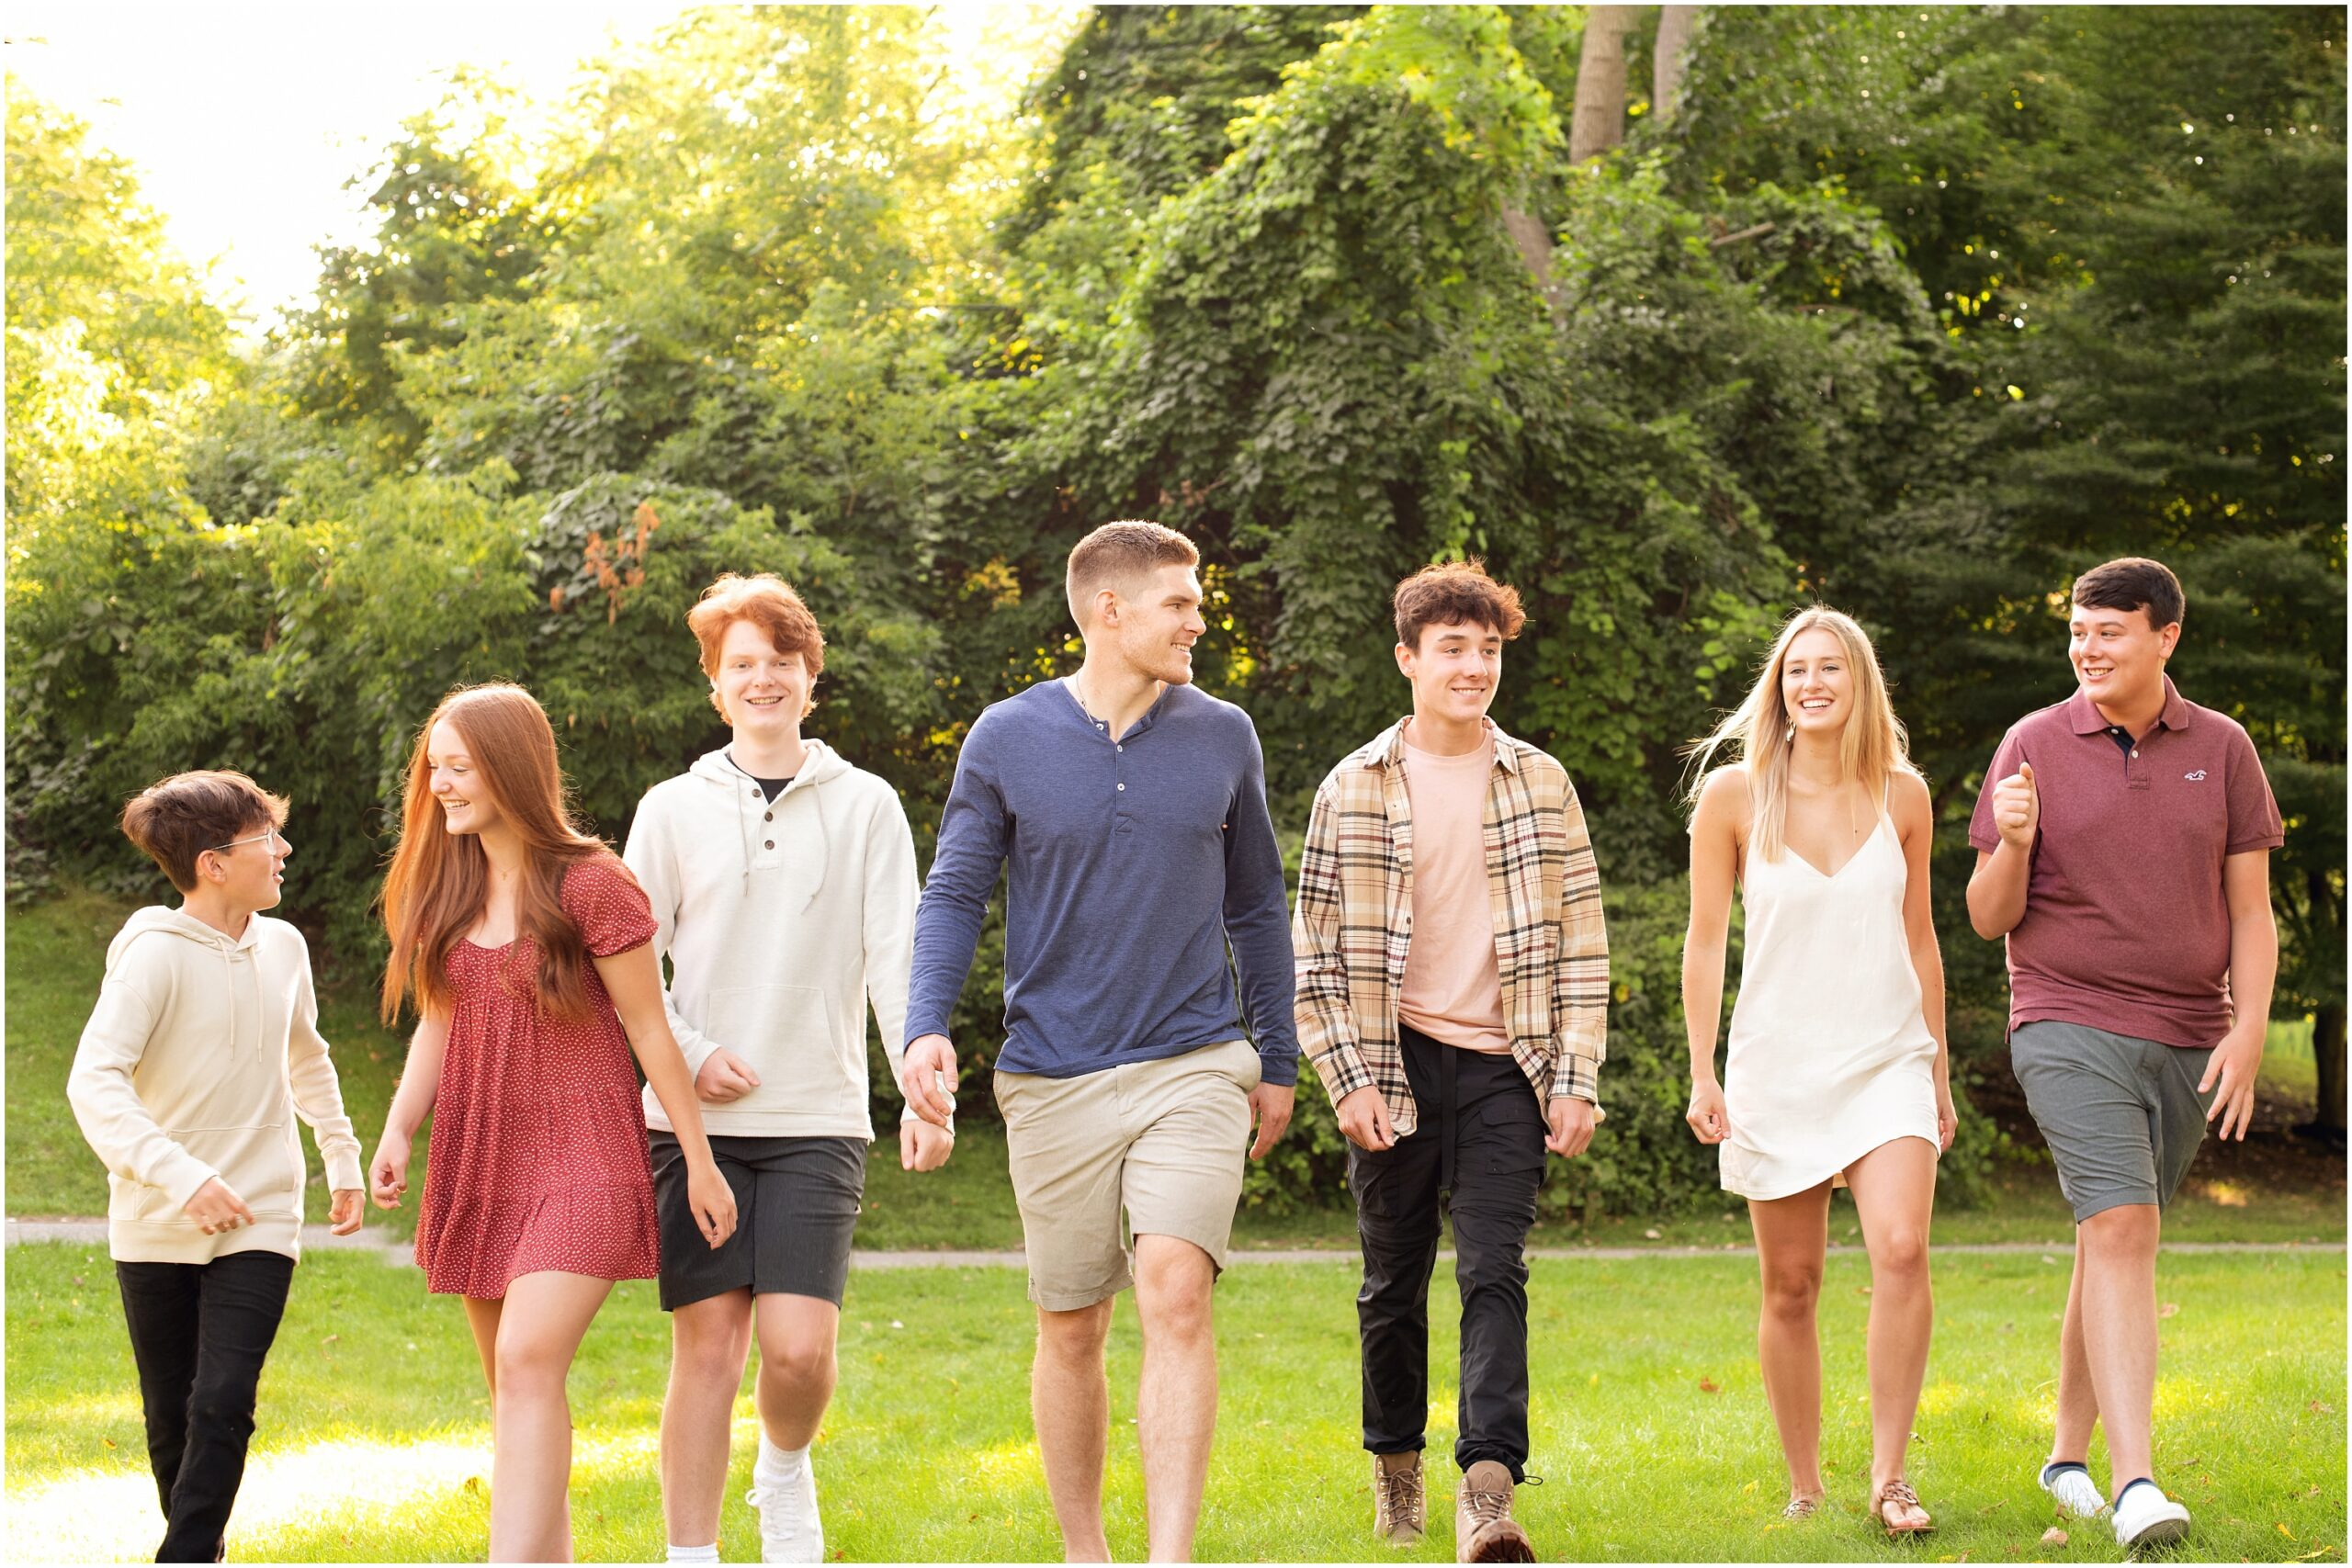 Extended Family Session – Just the Grandkids